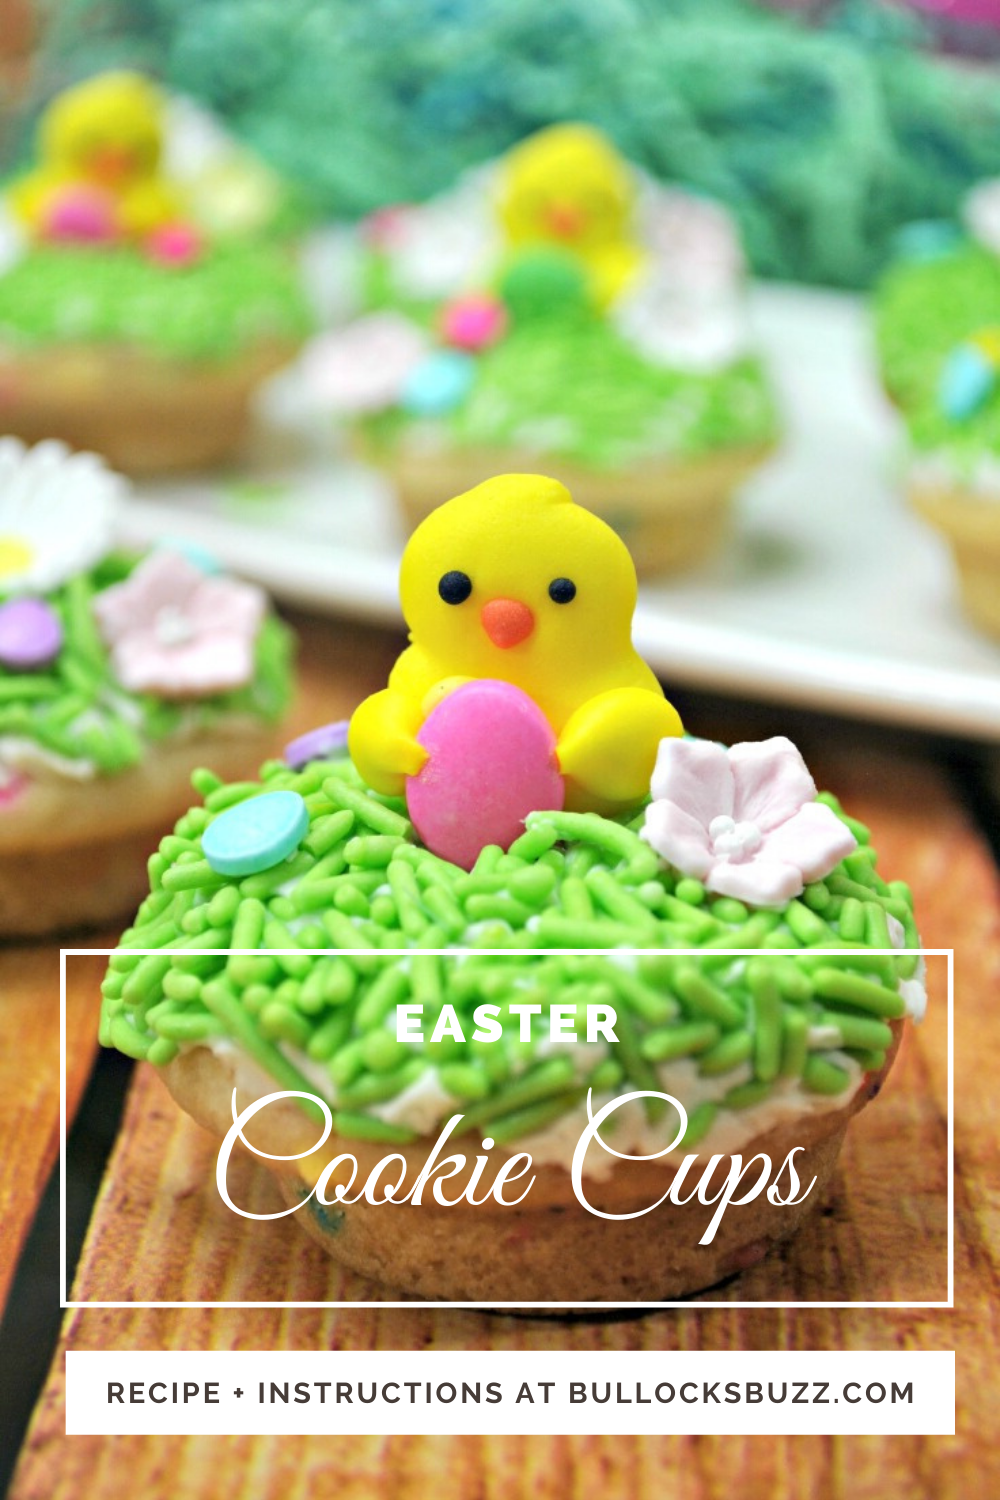 Deliciously sweet sugar cookie cups are filled with a homemade vanilla frosting and topped off with candy grass, candy eggs, and a cute little Easter chick in this easy Easter Cookie Cups recipe. These sugar cookie cups are SO simple and make the perfect Easter dessert! #Easter #Easterrecipes #cookiecups